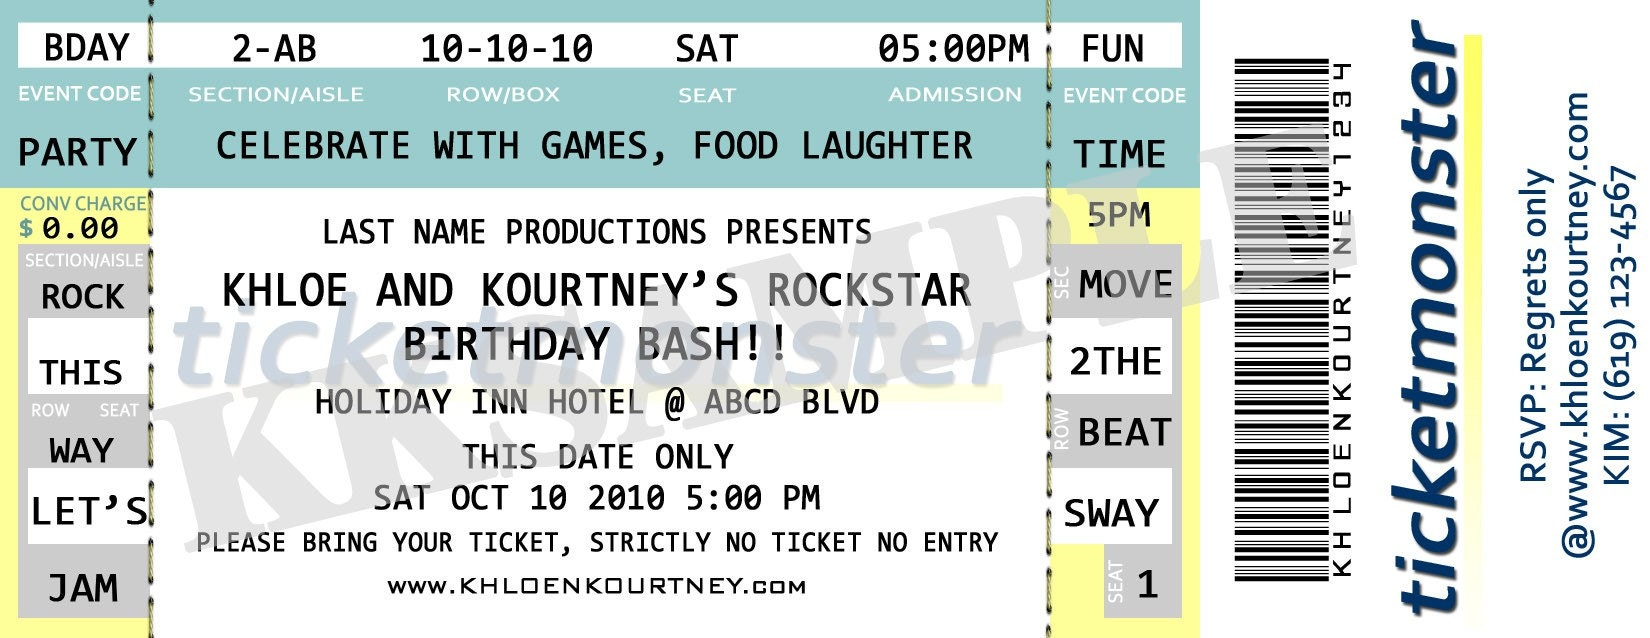 Doc550254 Concert Ticket Template Free 33 Premium Free Ticket – Make Your Own Concert Tickets